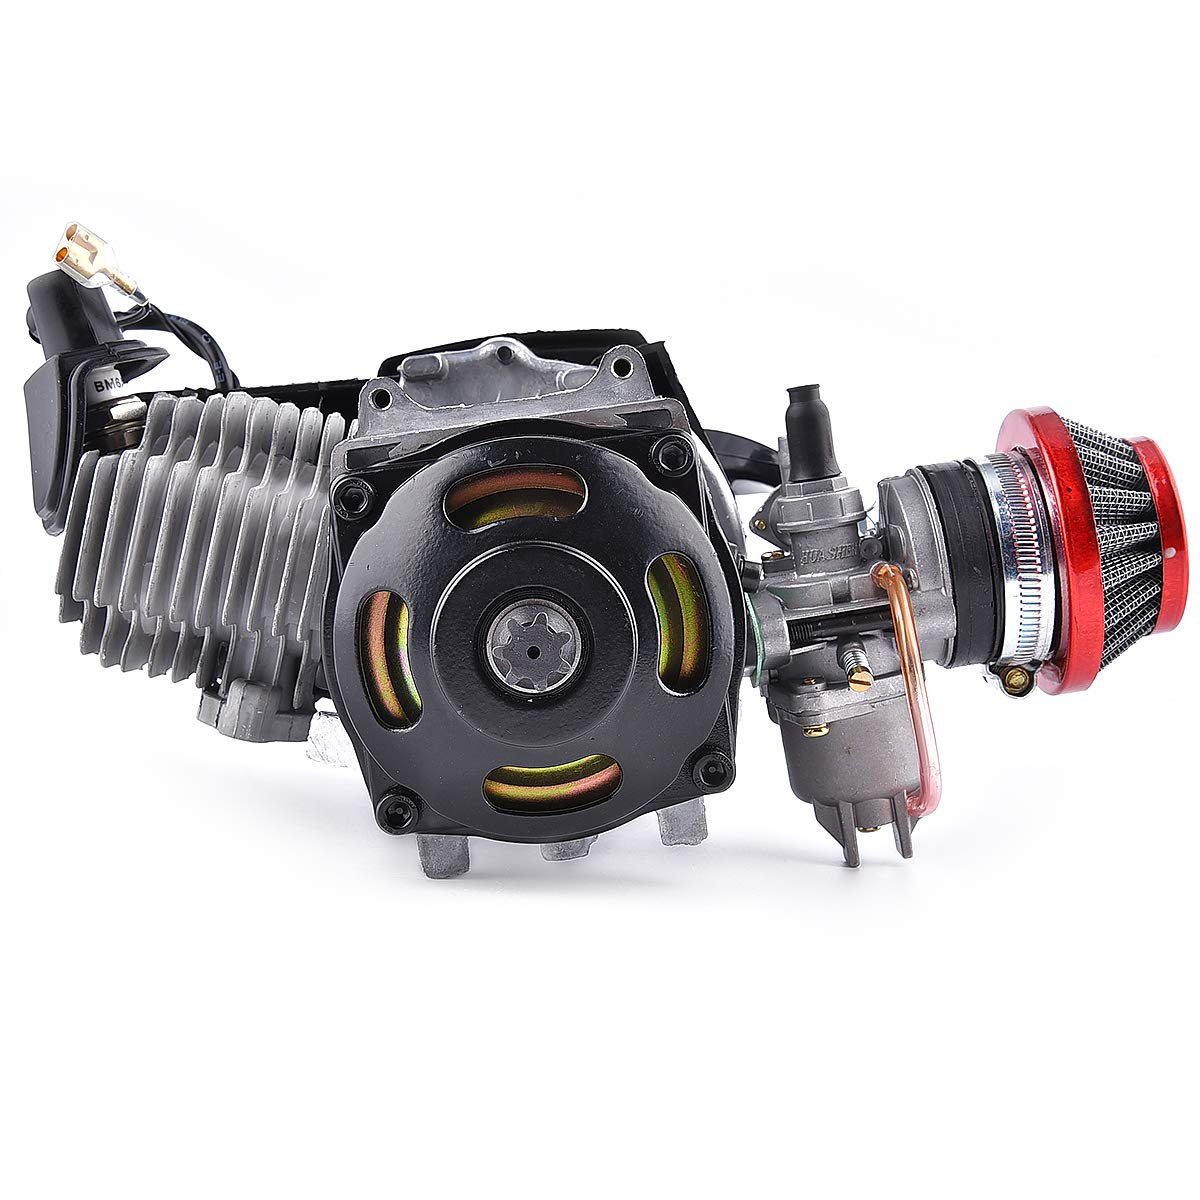 Air Filter 47CC Motor Pocket Mini Bike Scooter ATV 7T 25H Chain 40MM Bore Engine 2-Stroke Handle Bar Throttle Cable